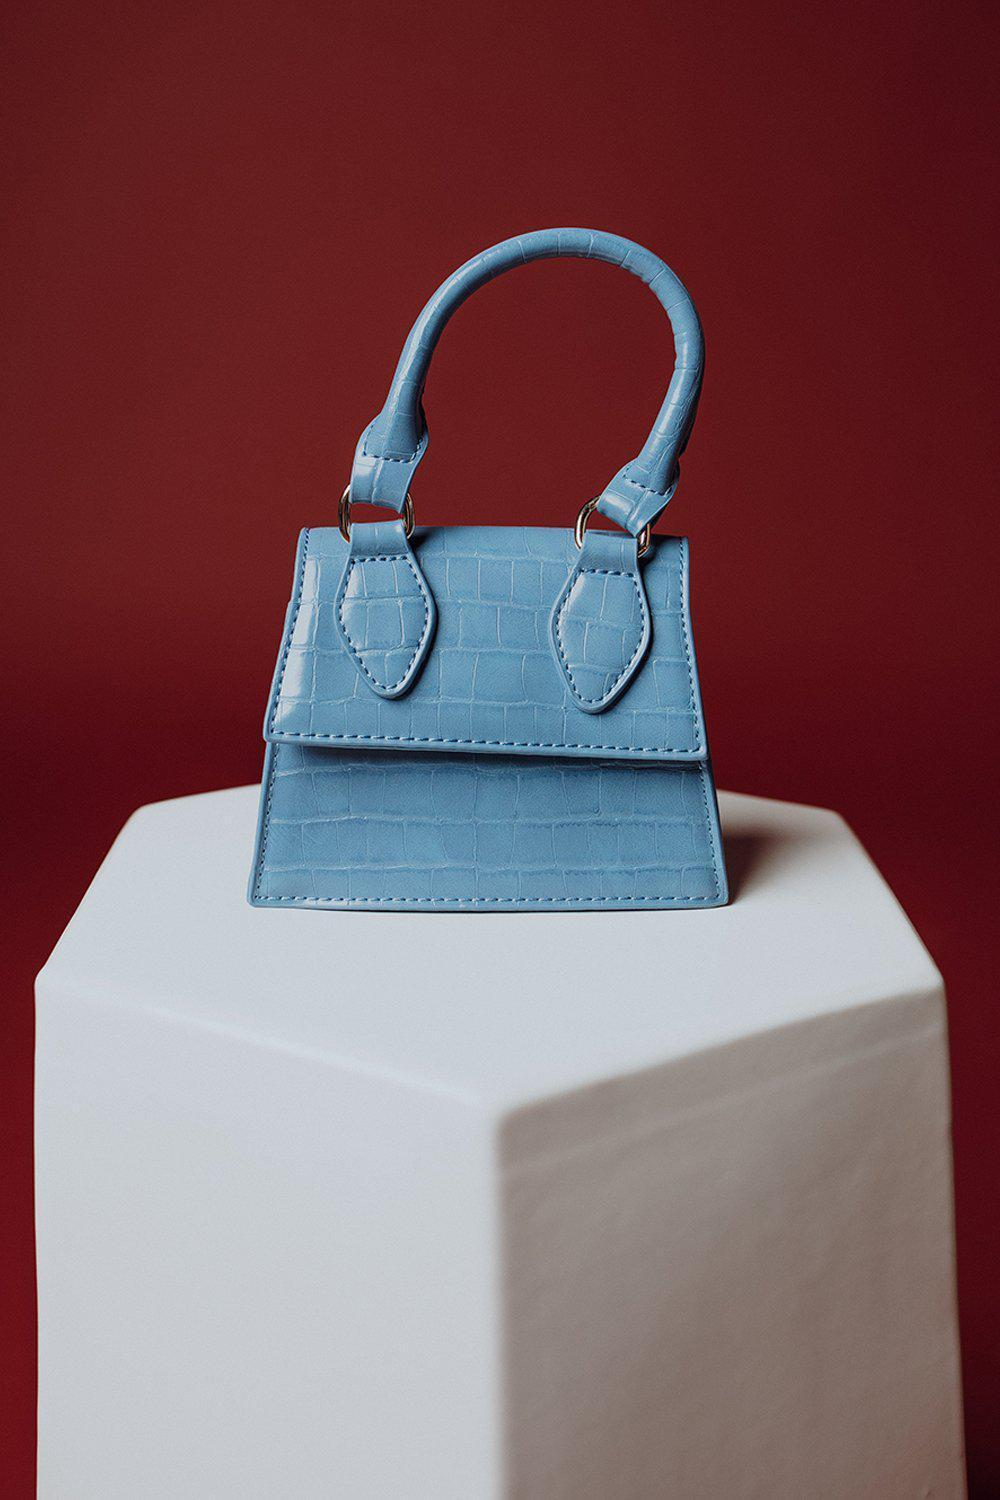 best_seller, On the Run Snakeskin Purse in Blue - FINAL SALE, Accessory, women's clothing, dresses, skirts, coats, jackets, shoes, boots, tops, tee shirts, jeans, free people, levi's, rollas, jumpsuits, bottoms, tops, sweaters, pullovers, pants, shorts, sweats,.